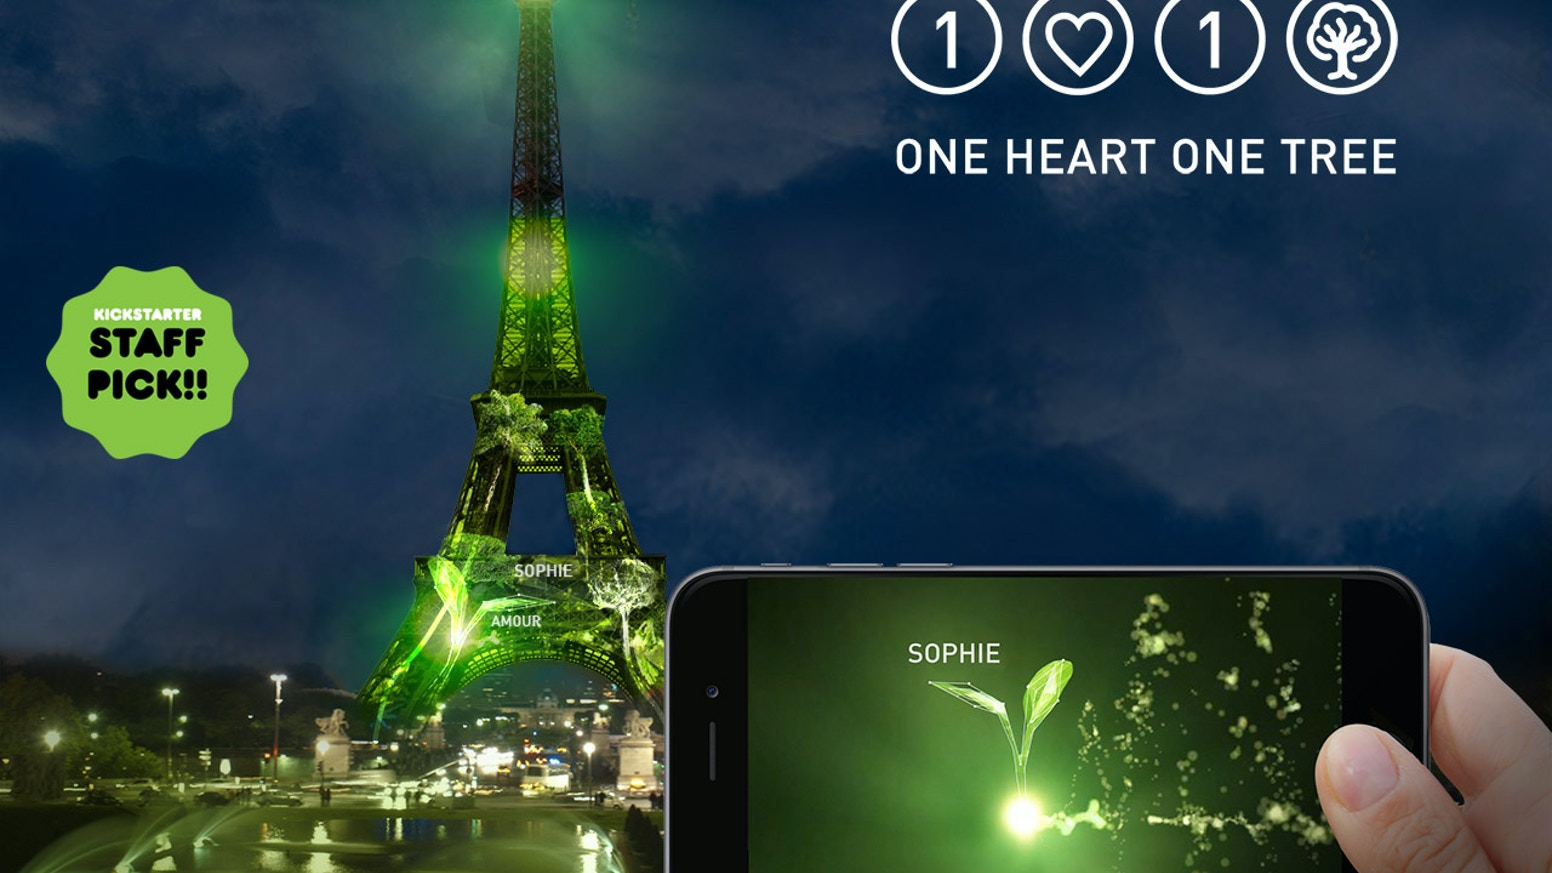 Plant virtual forests on the EIFFEL TOWER and reforest the planet! Des forêts virtuelles sur la TOUR EIFFEL pour reforester la planète! You can continue to contribute and follow us  www.1heart1tree.org